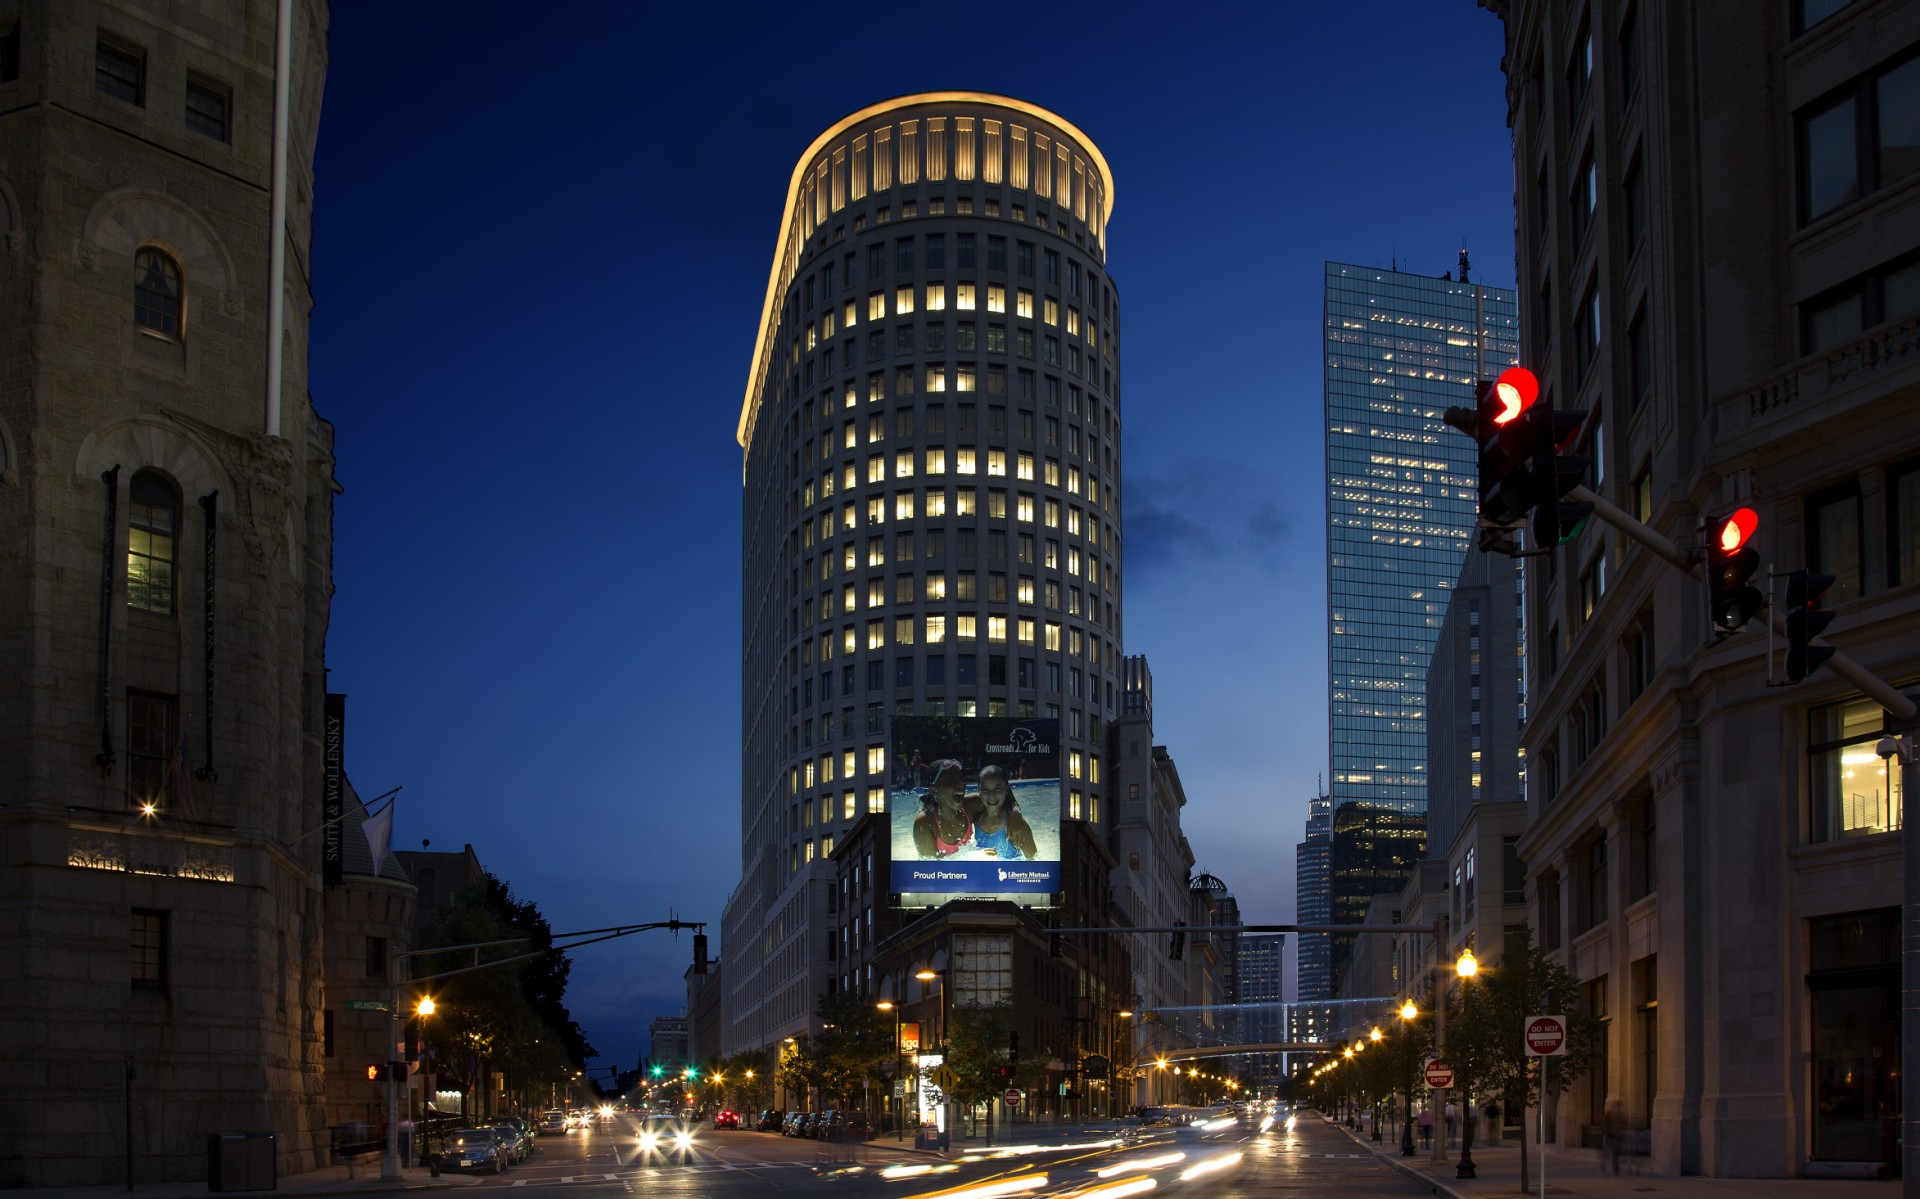 The designers used Lumenfacade luminaires to light the top of the tower